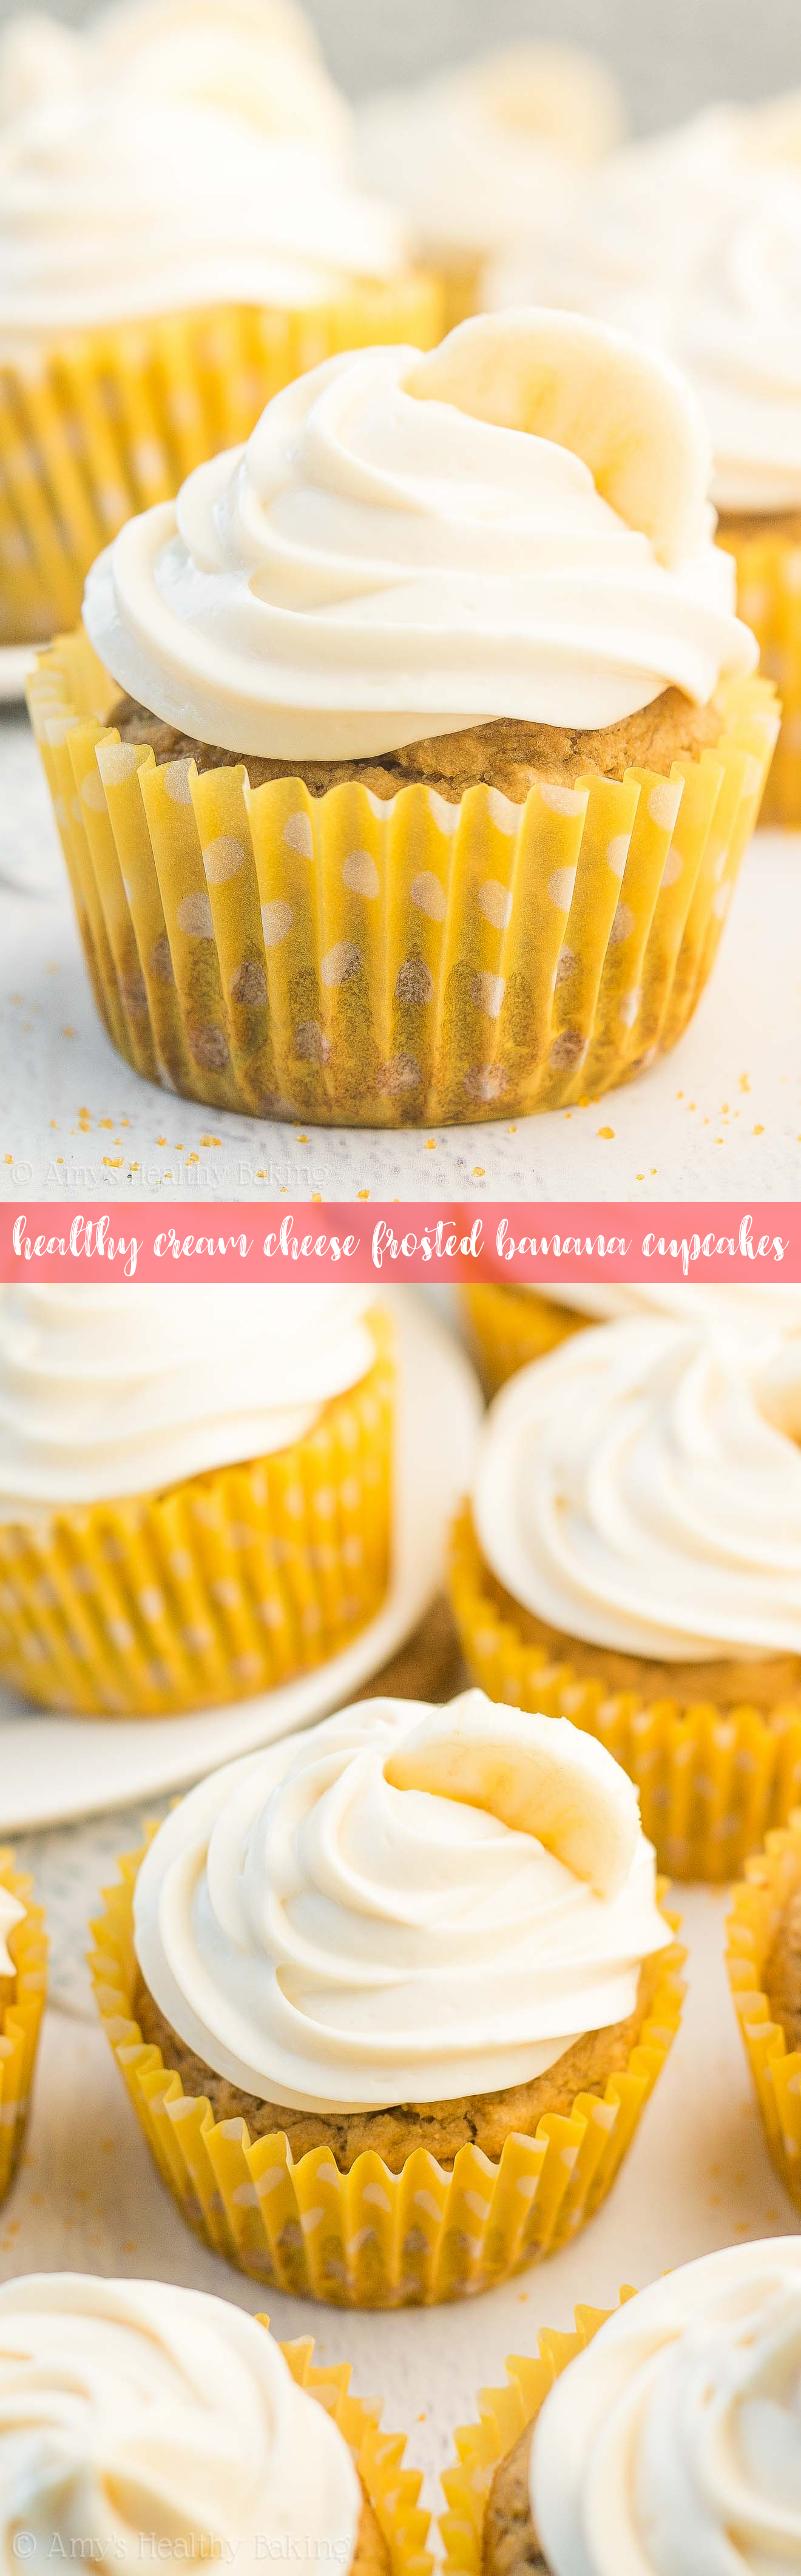 {HEALTHY!} Banana Cupcakes + Cream Cheese Frosting -- only 120 calories! This recipe tastes INCREDIBLE, like it came from a fancy bakery! And it's easier to make than you'd expect!